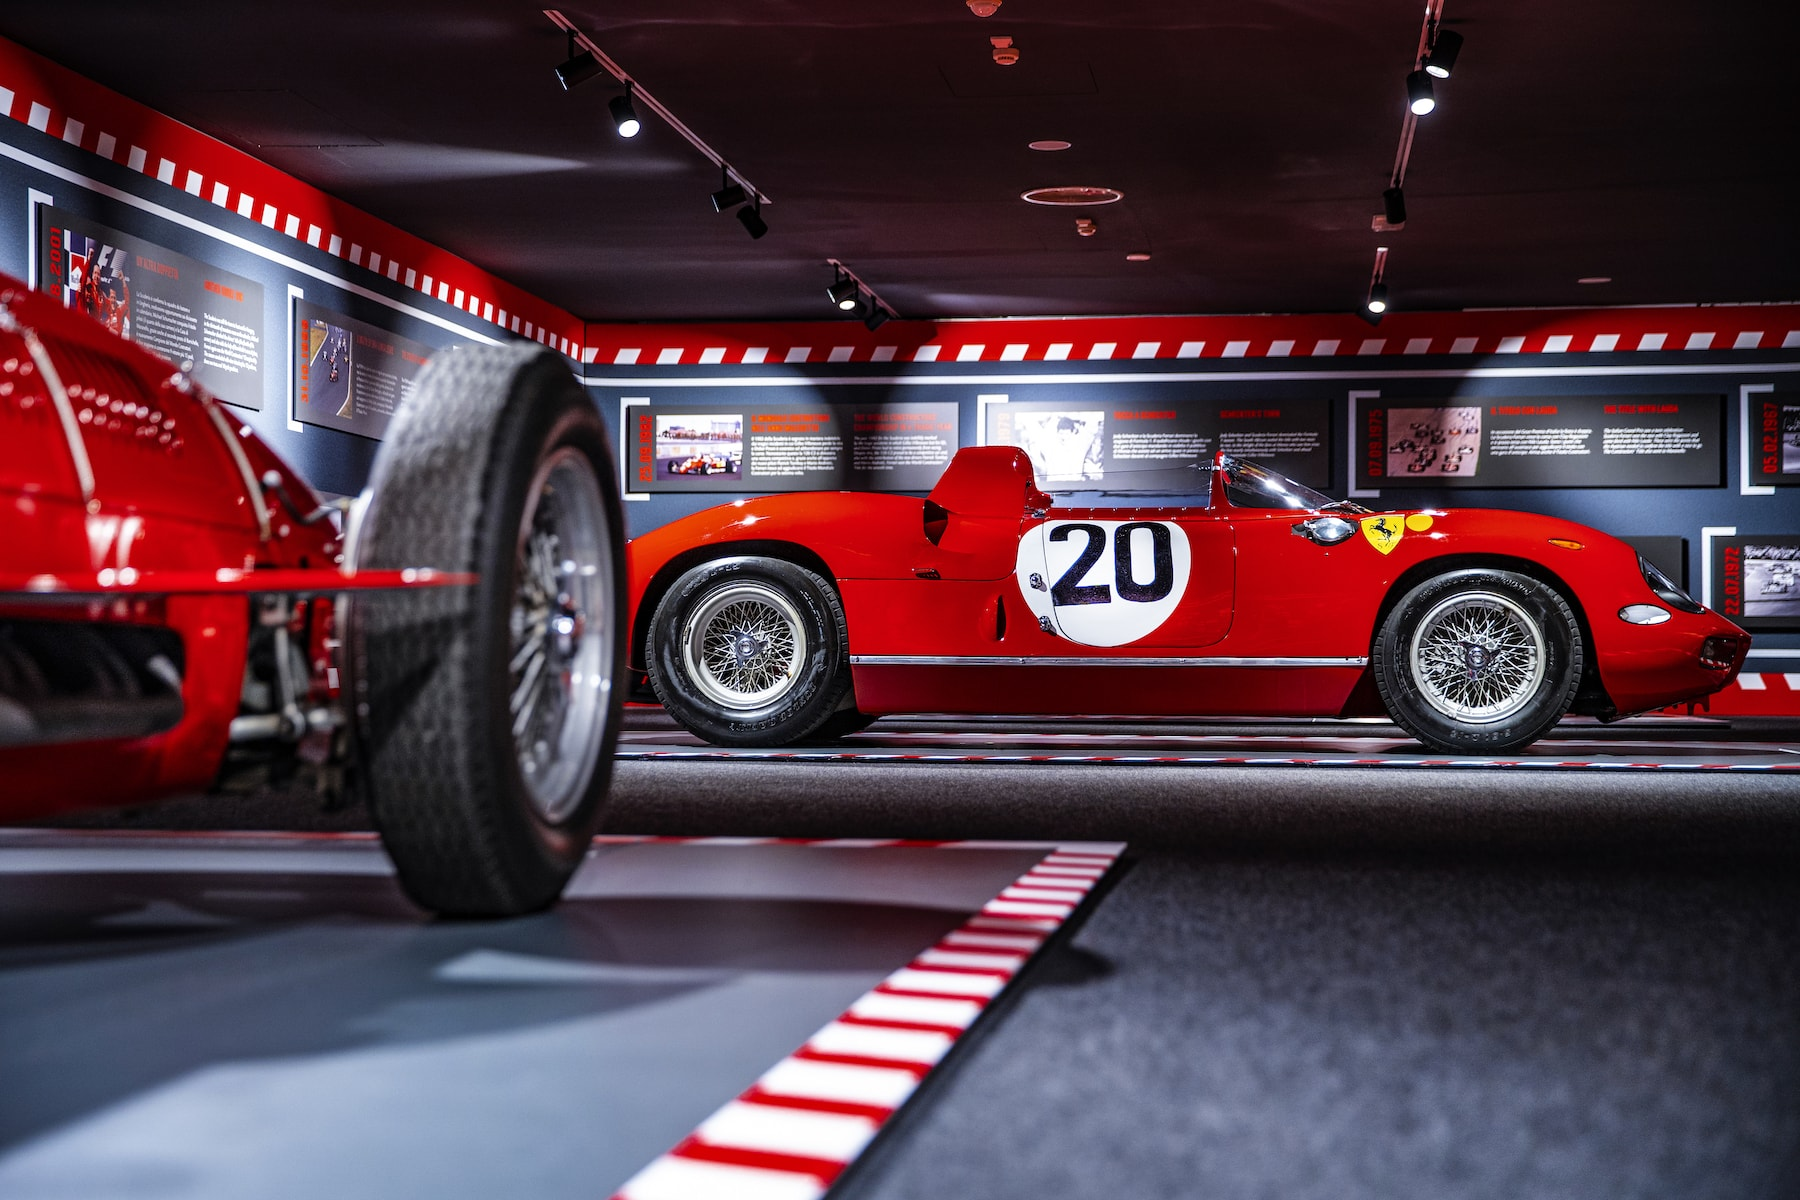 2019 Museo Ferrari 90 years exhibition 6.jpg